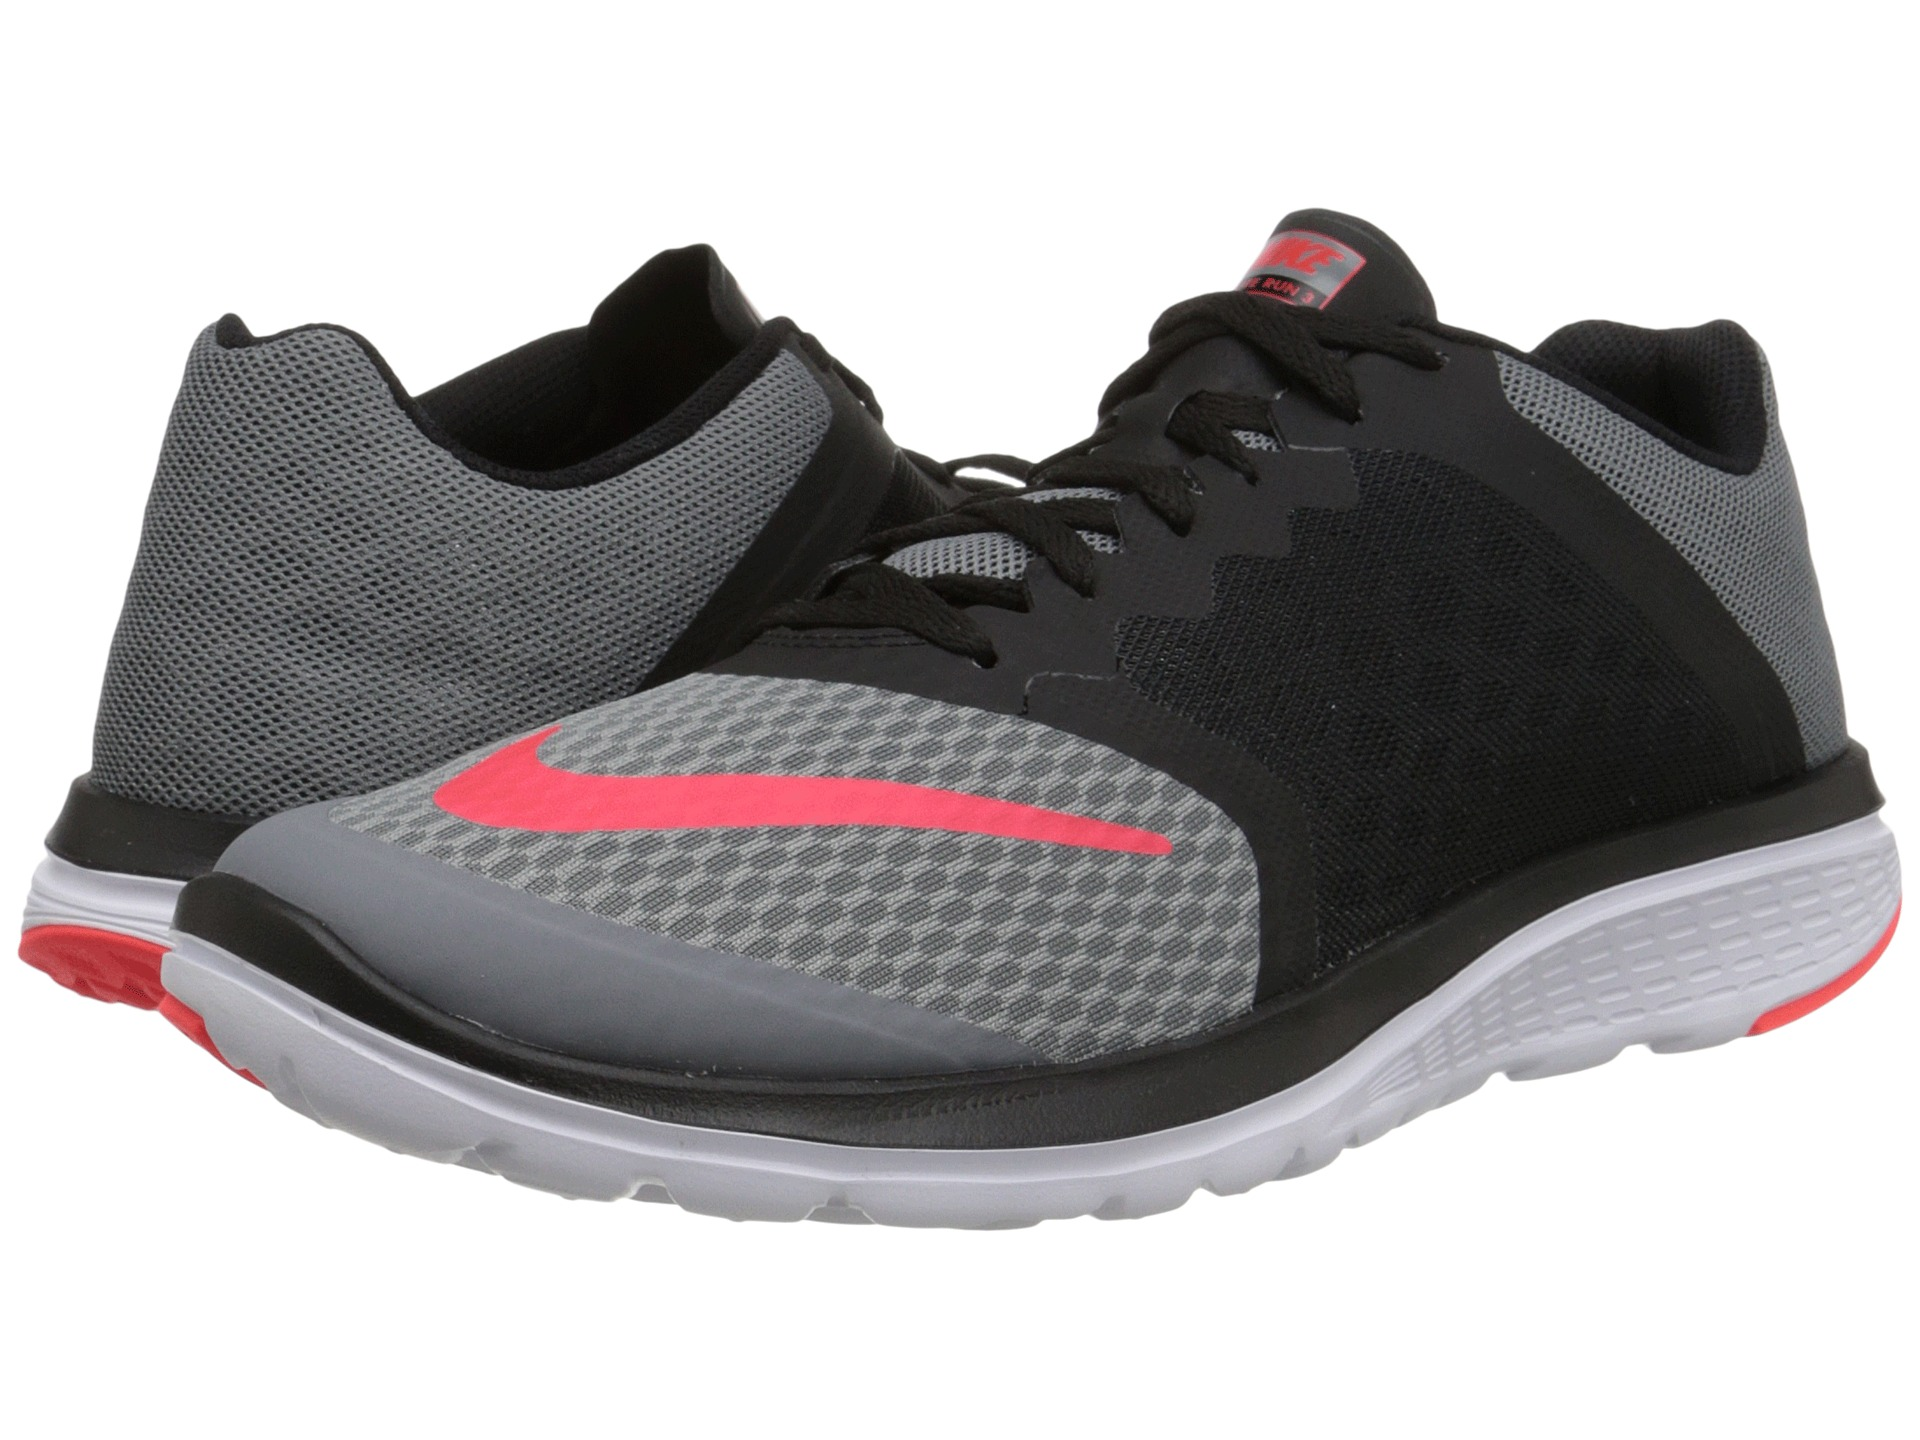 Nike FS Lite Run 2 Lightweight Running Shoe Mens Men's Shoes